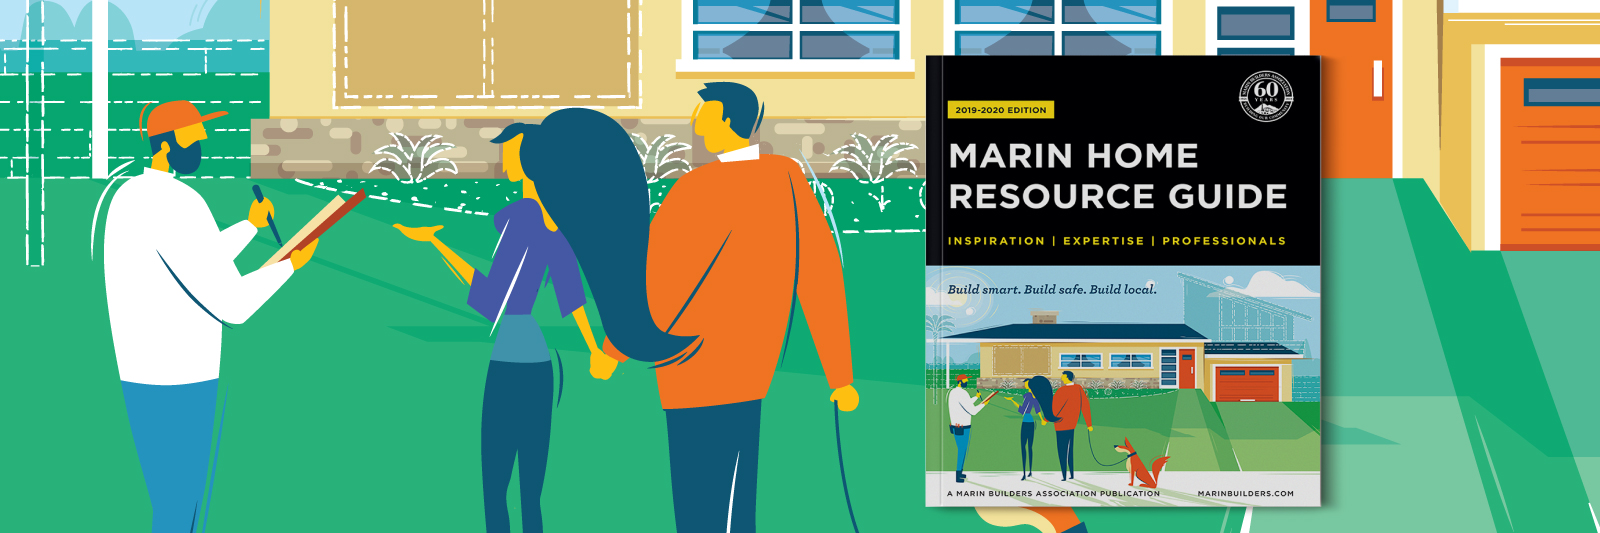 Marin-Builders-Marin-Home-Resource-Guide-2019-2020.jpg